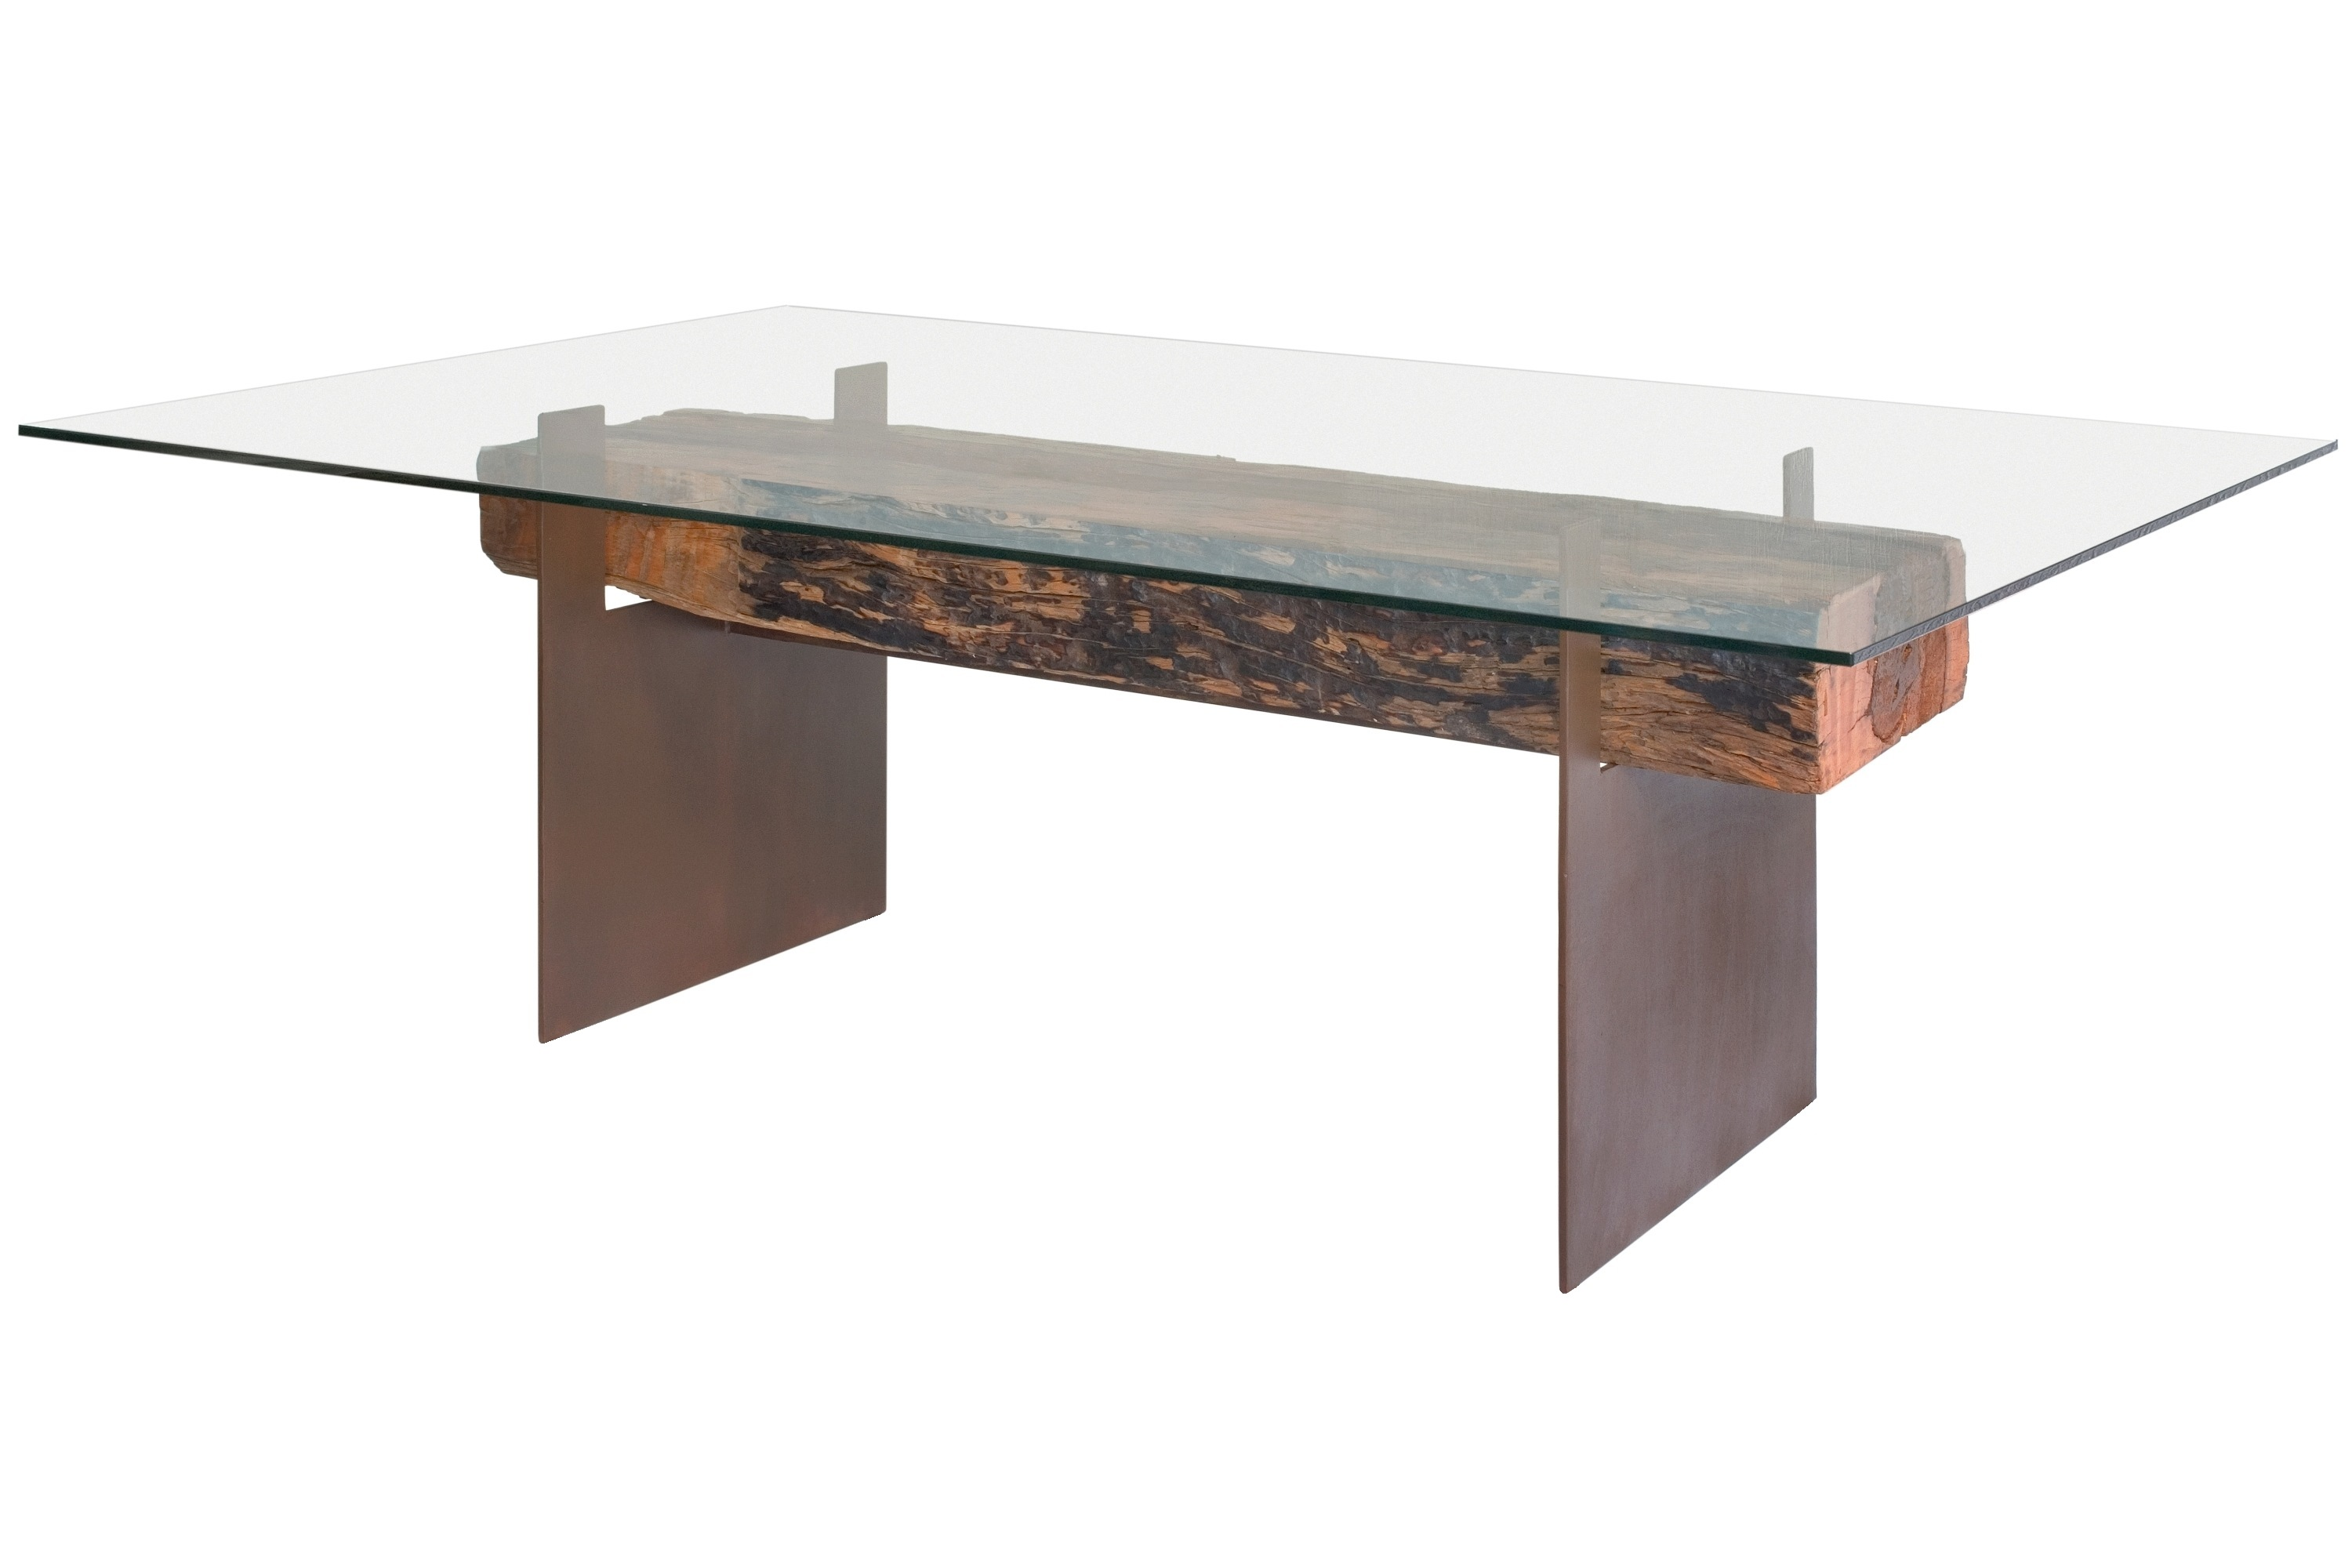 Glass Top Dining Table Made With A Reclaimed Beam Connecting Its